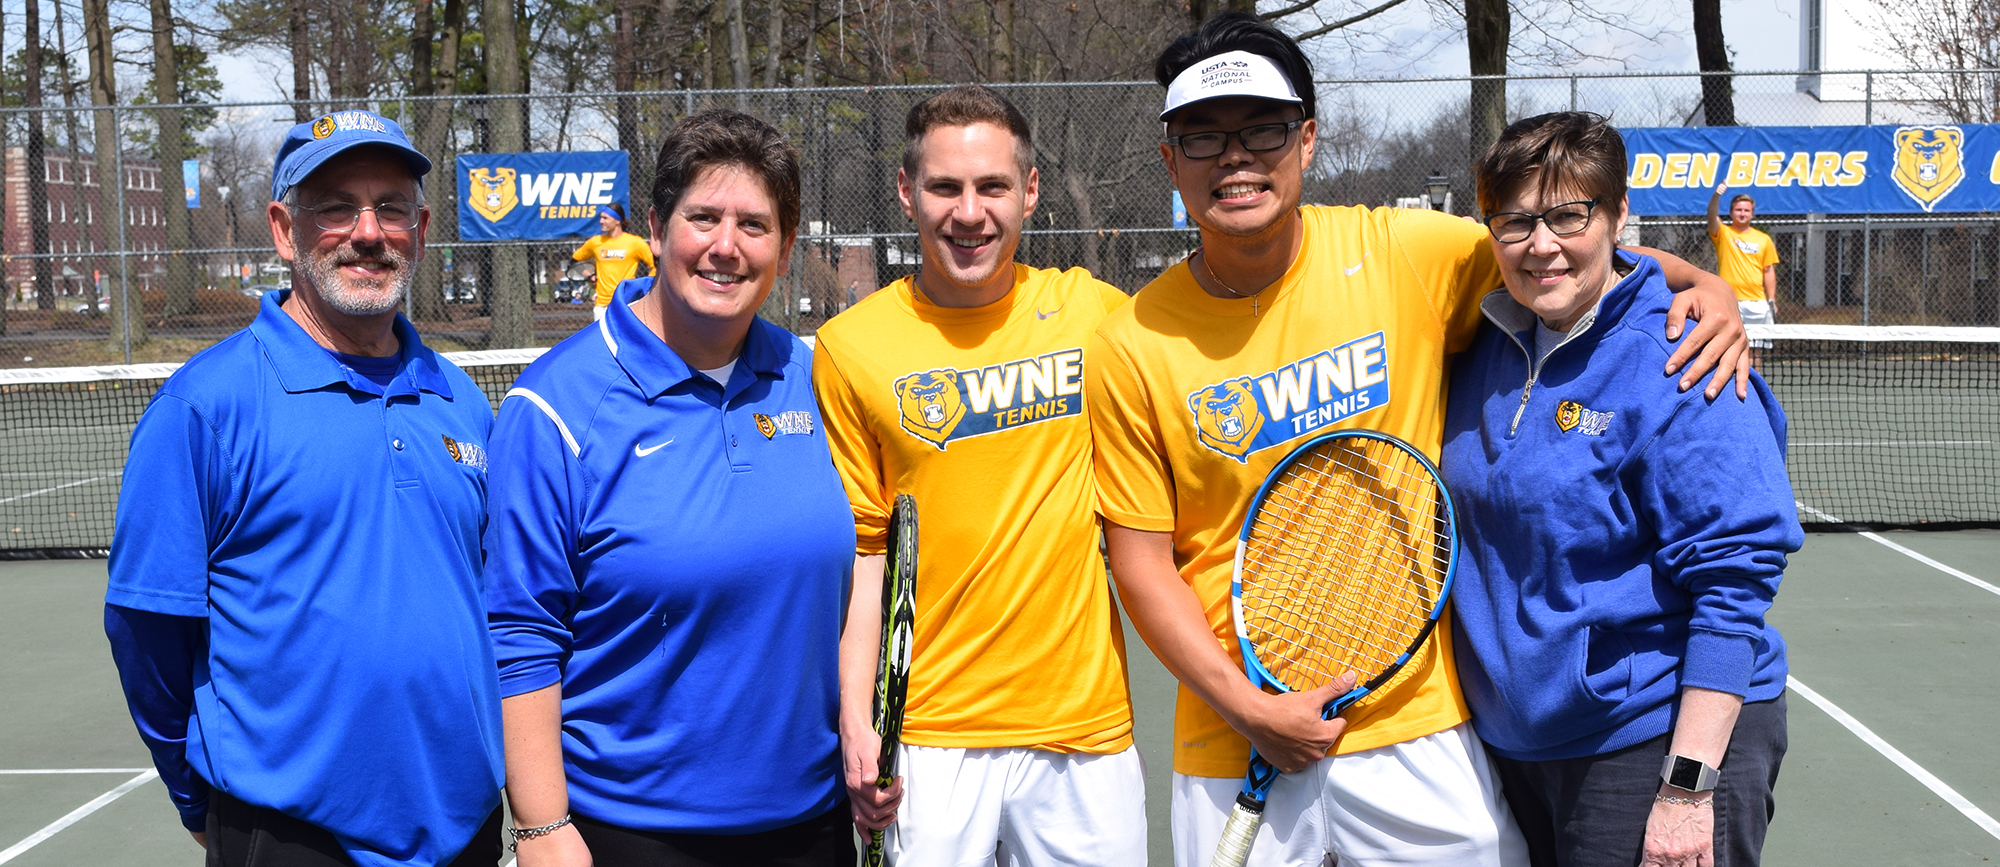 Seniors Justin Kohut and Michael Tran were honored before the start of Saturday's match against Endicott. (Photo by Rachael Margossian)